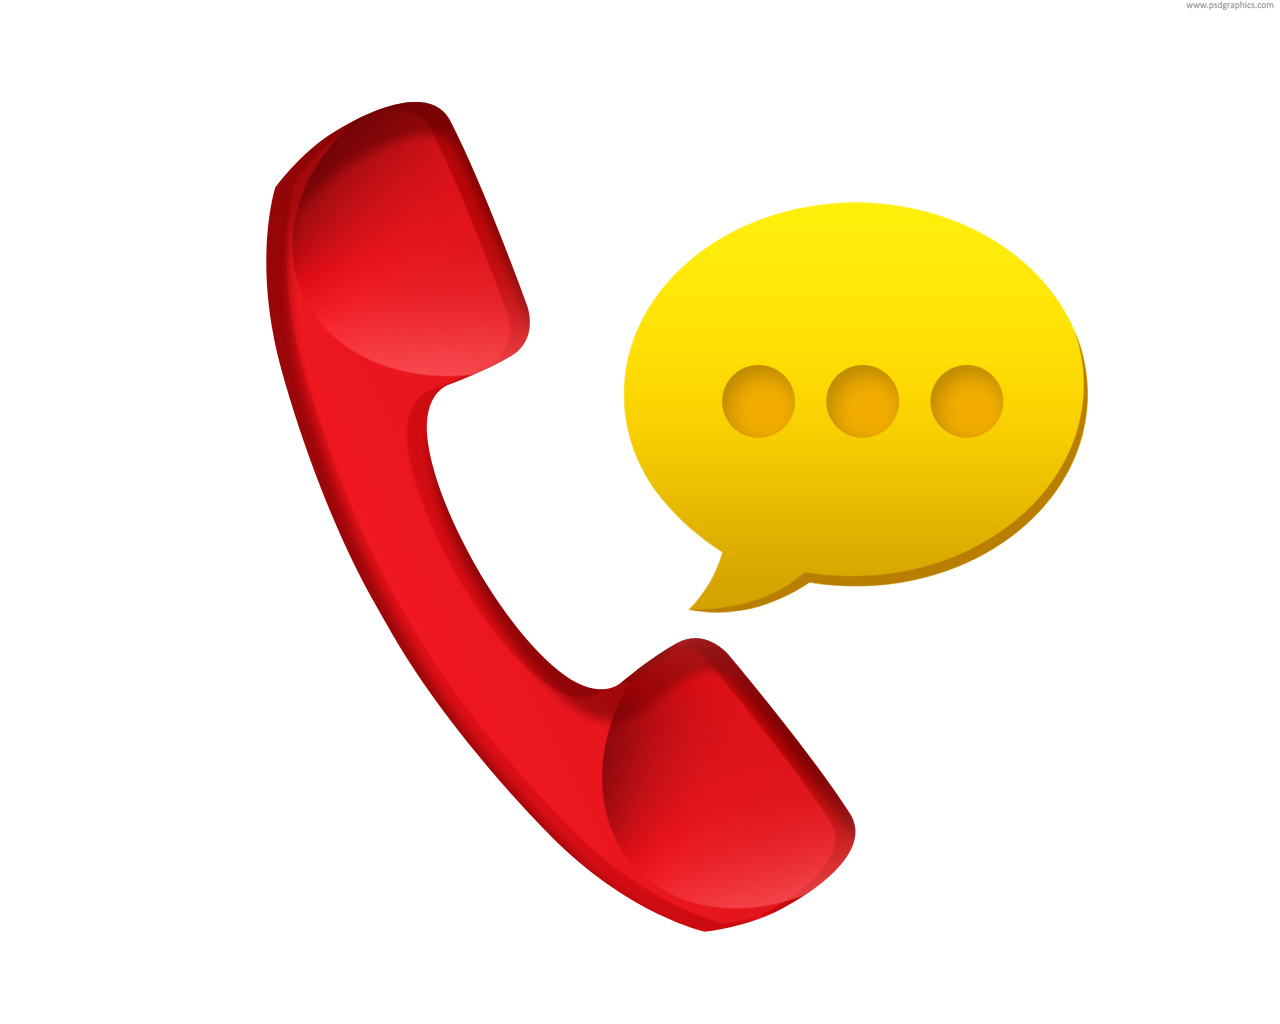 14 Red Voicemail Icon Images